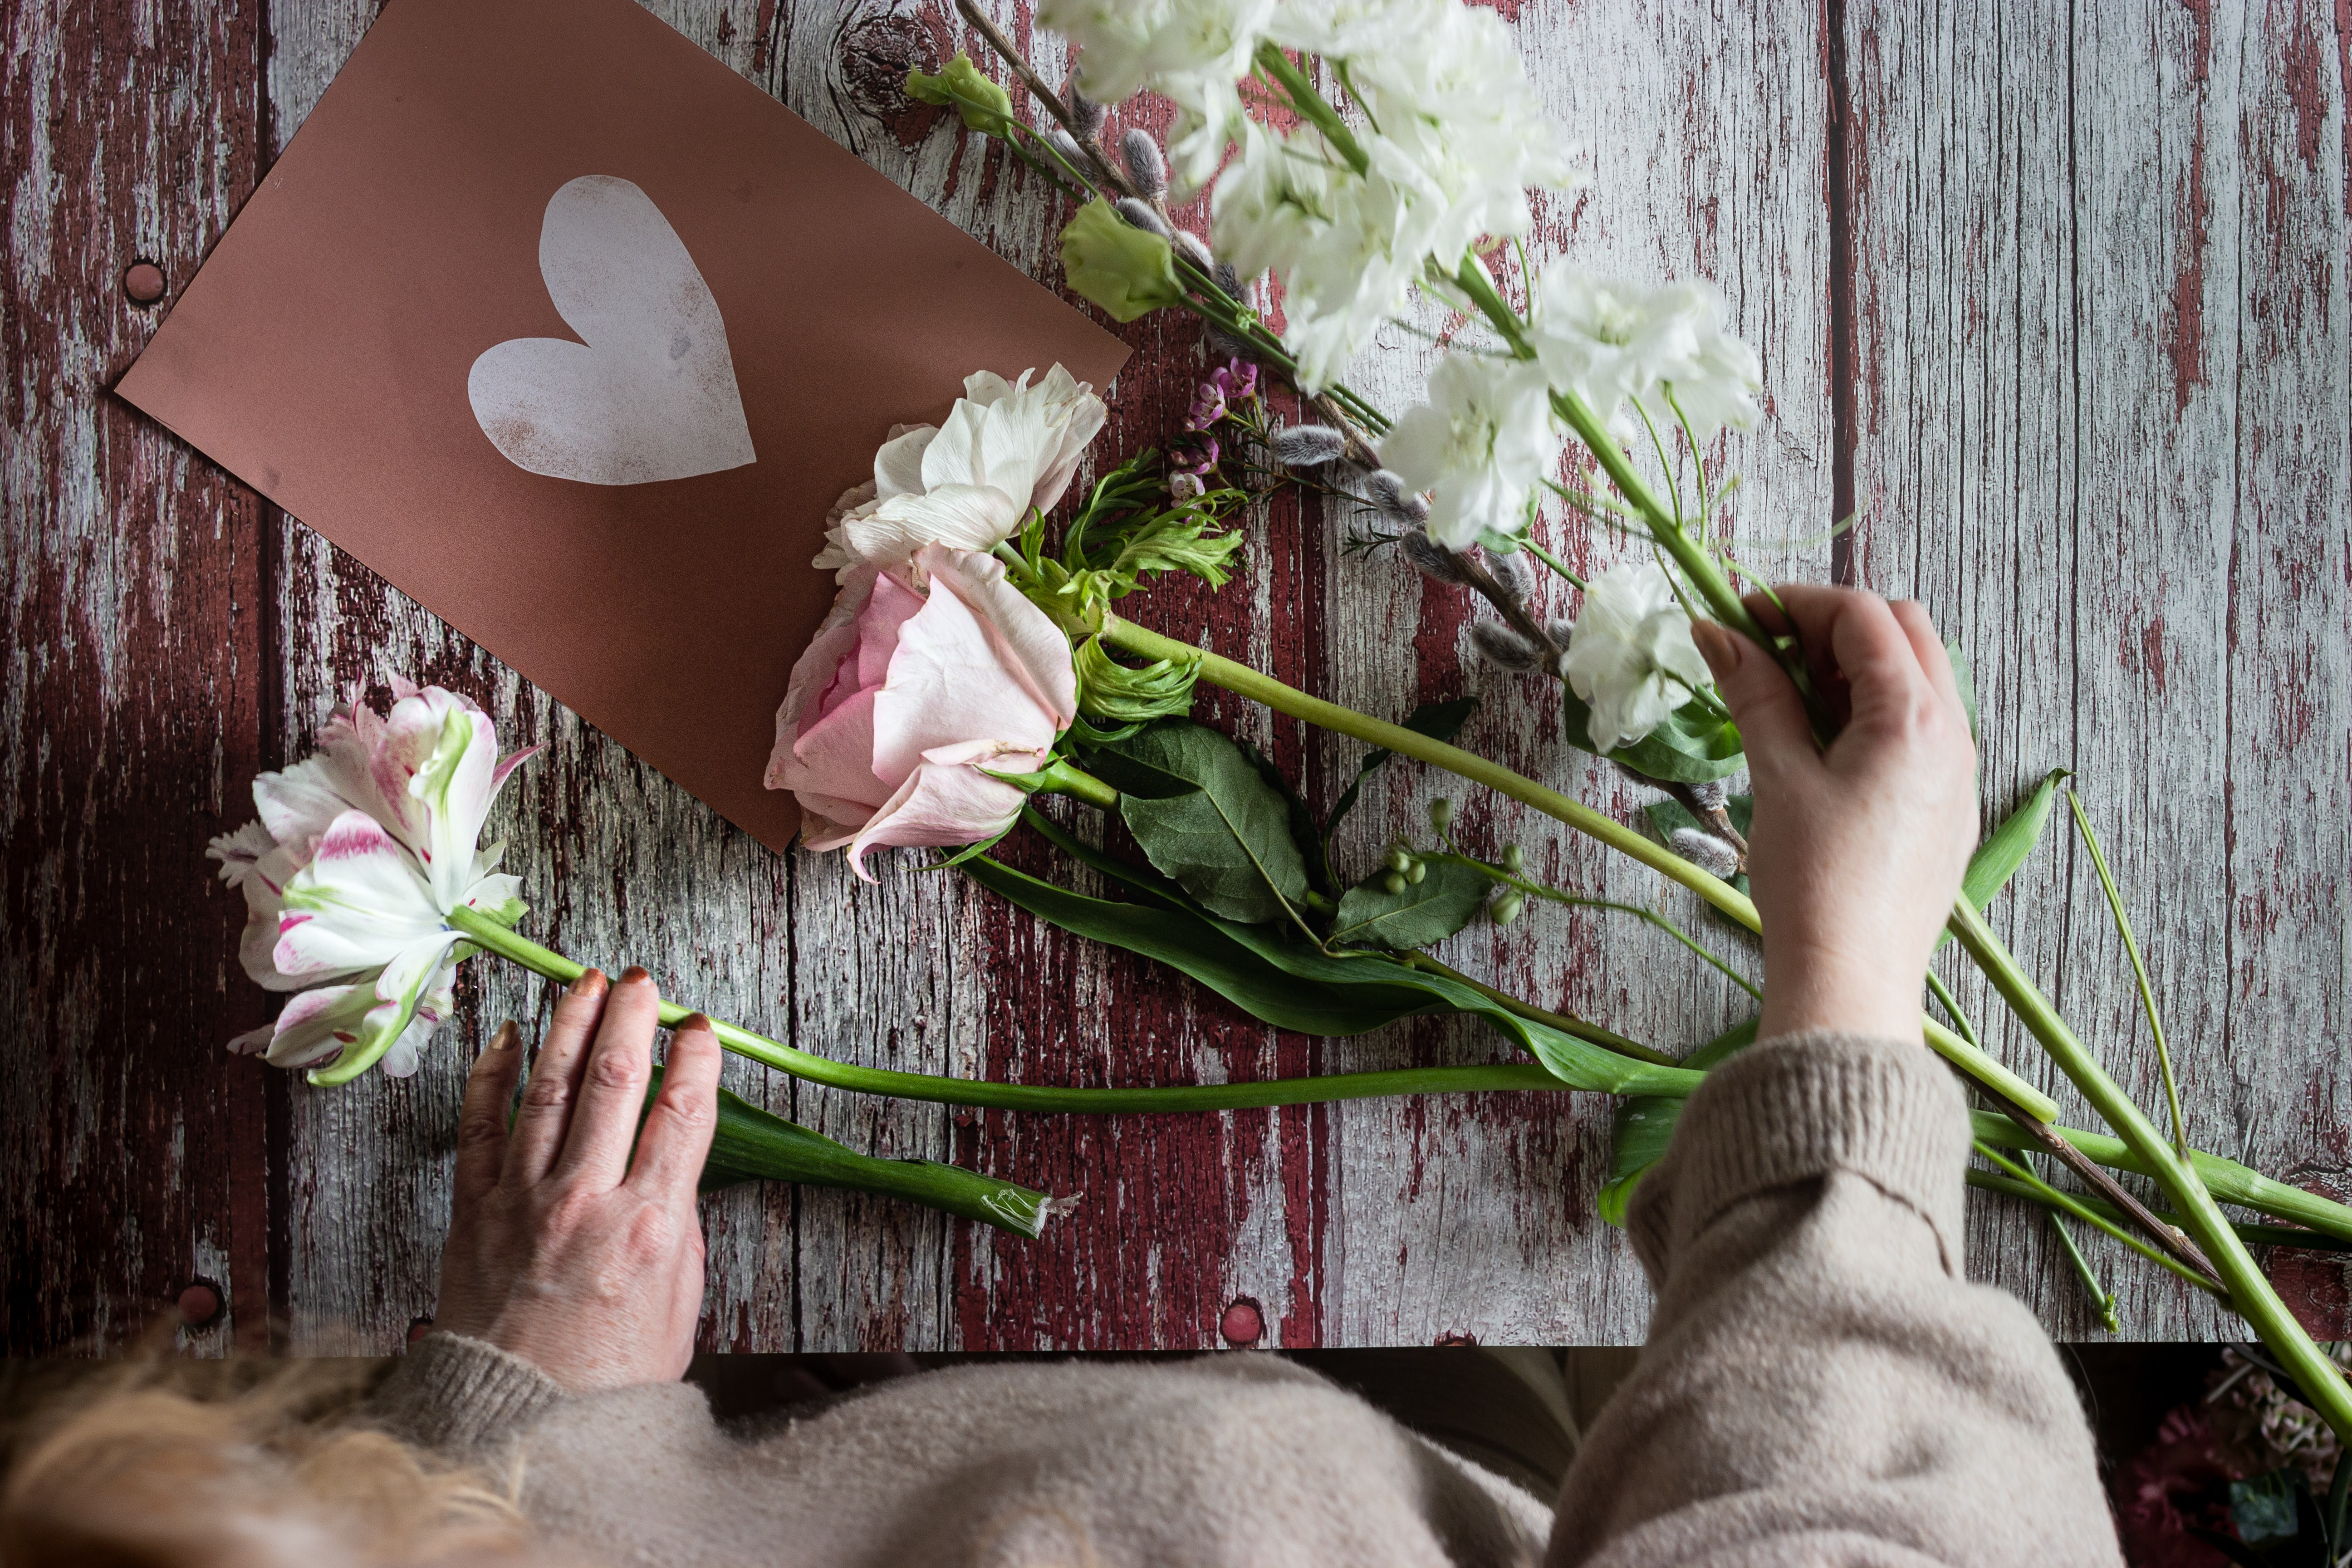 An individual places flowers around a handmade card with a heart drawn on it.